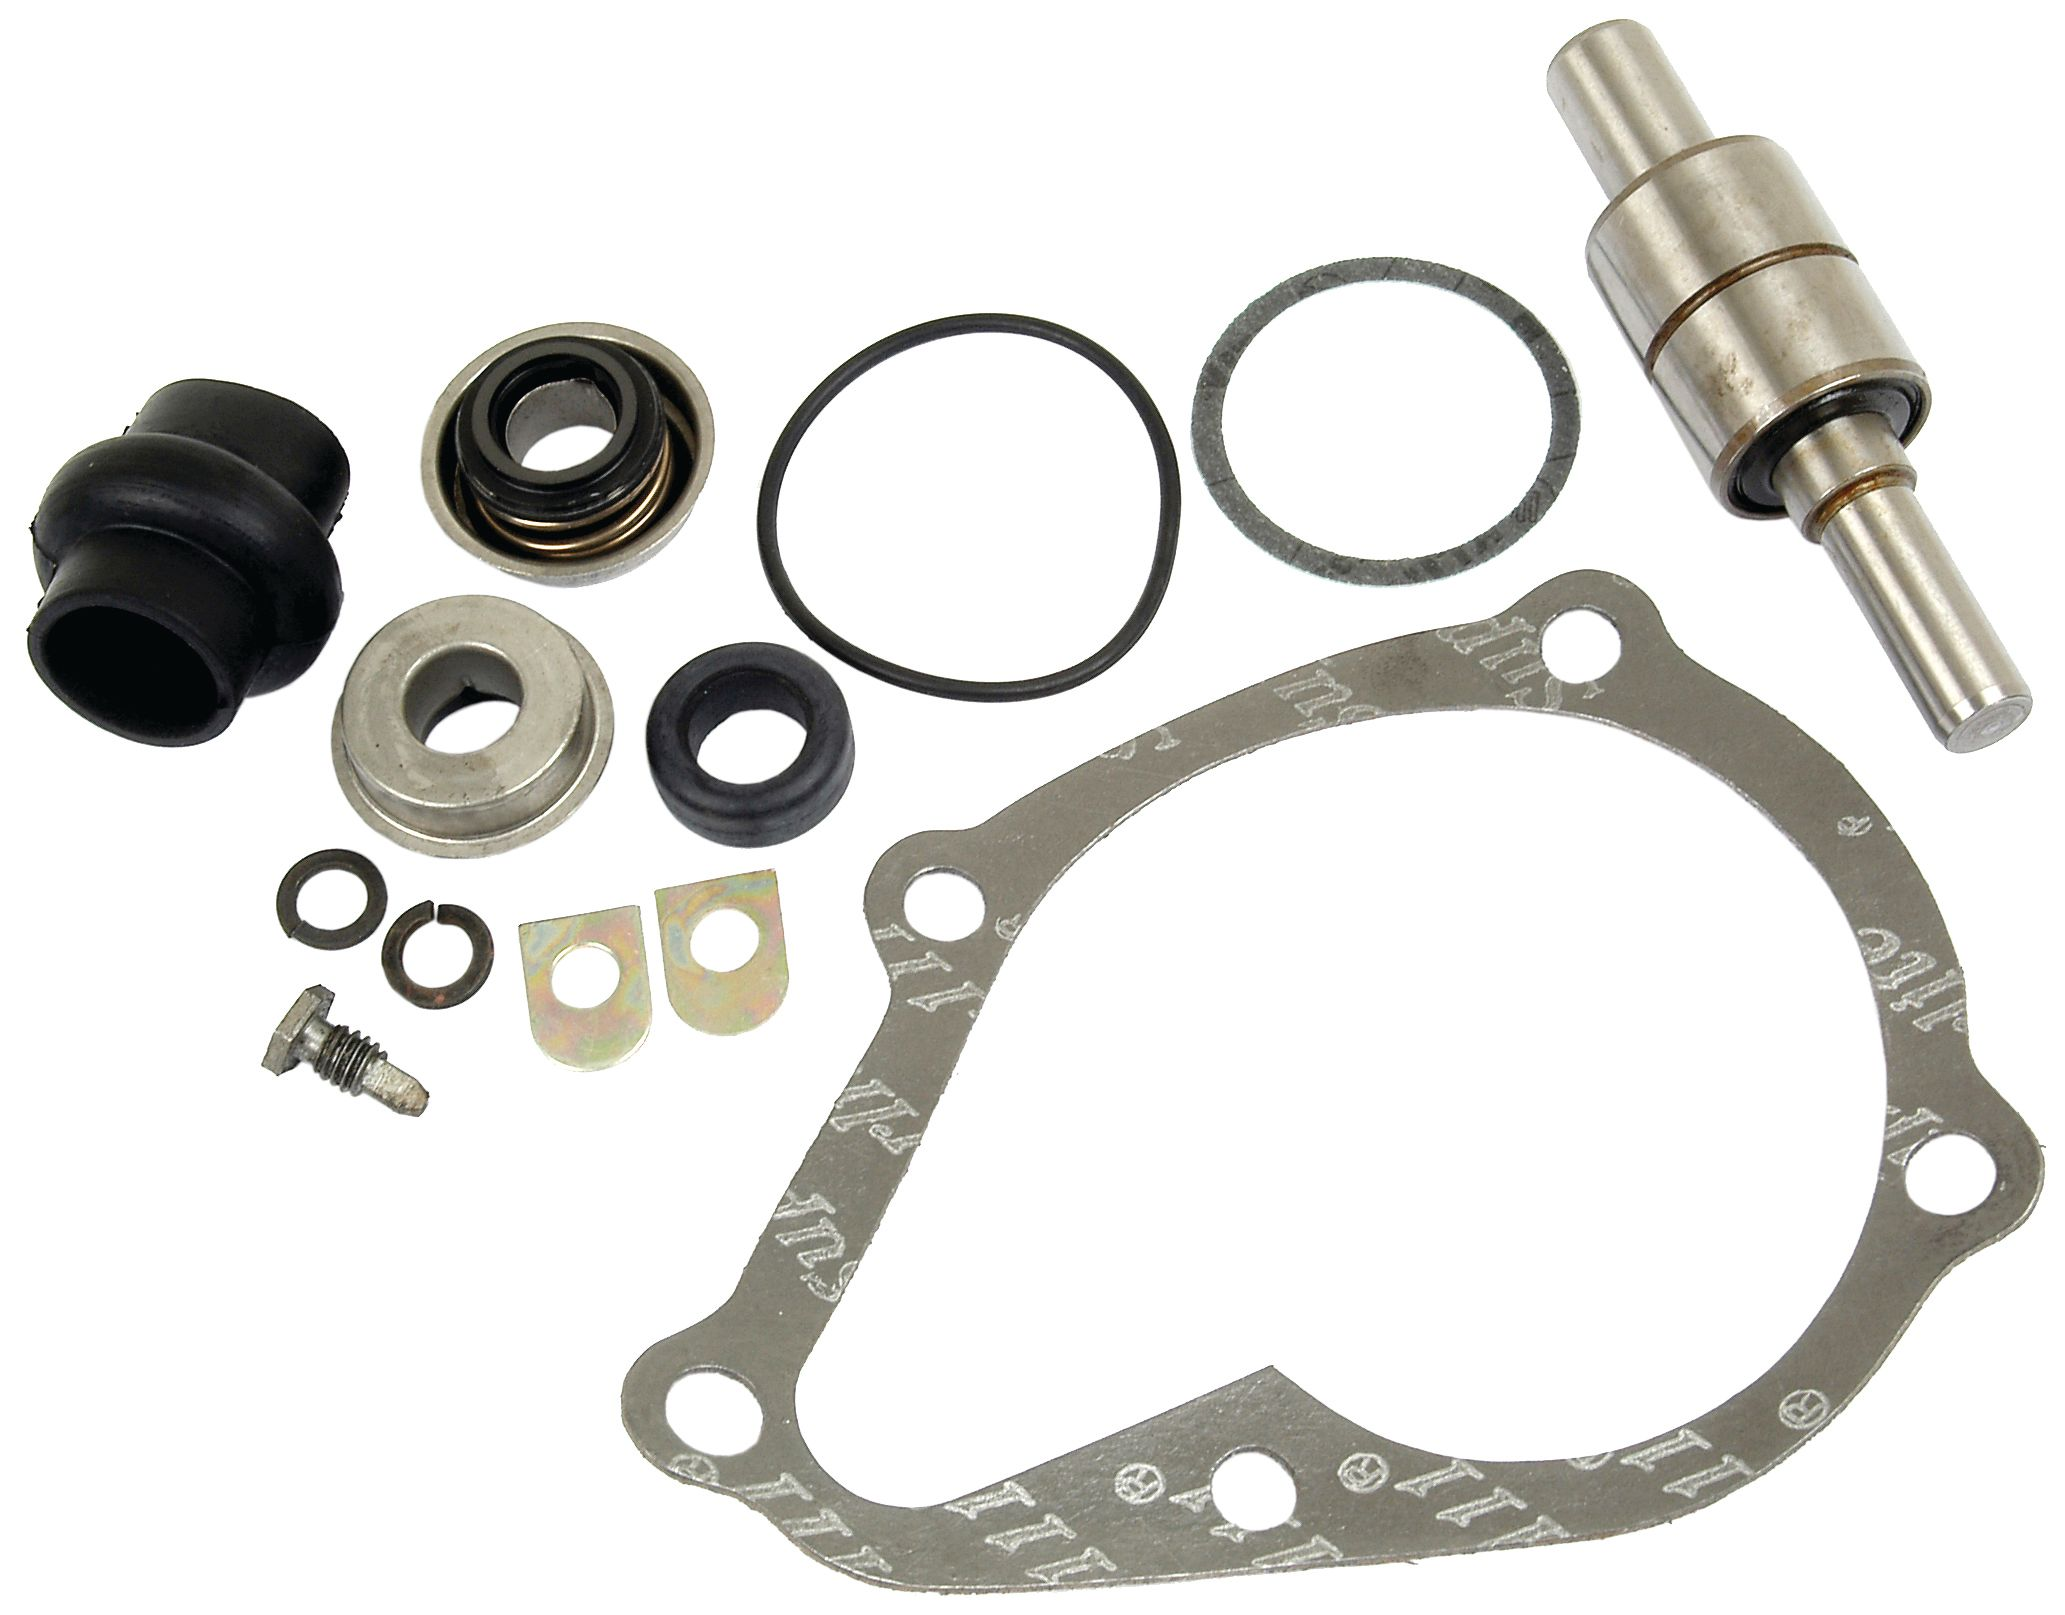 DAVID BROWN WATER PUMP REPAIR KIT